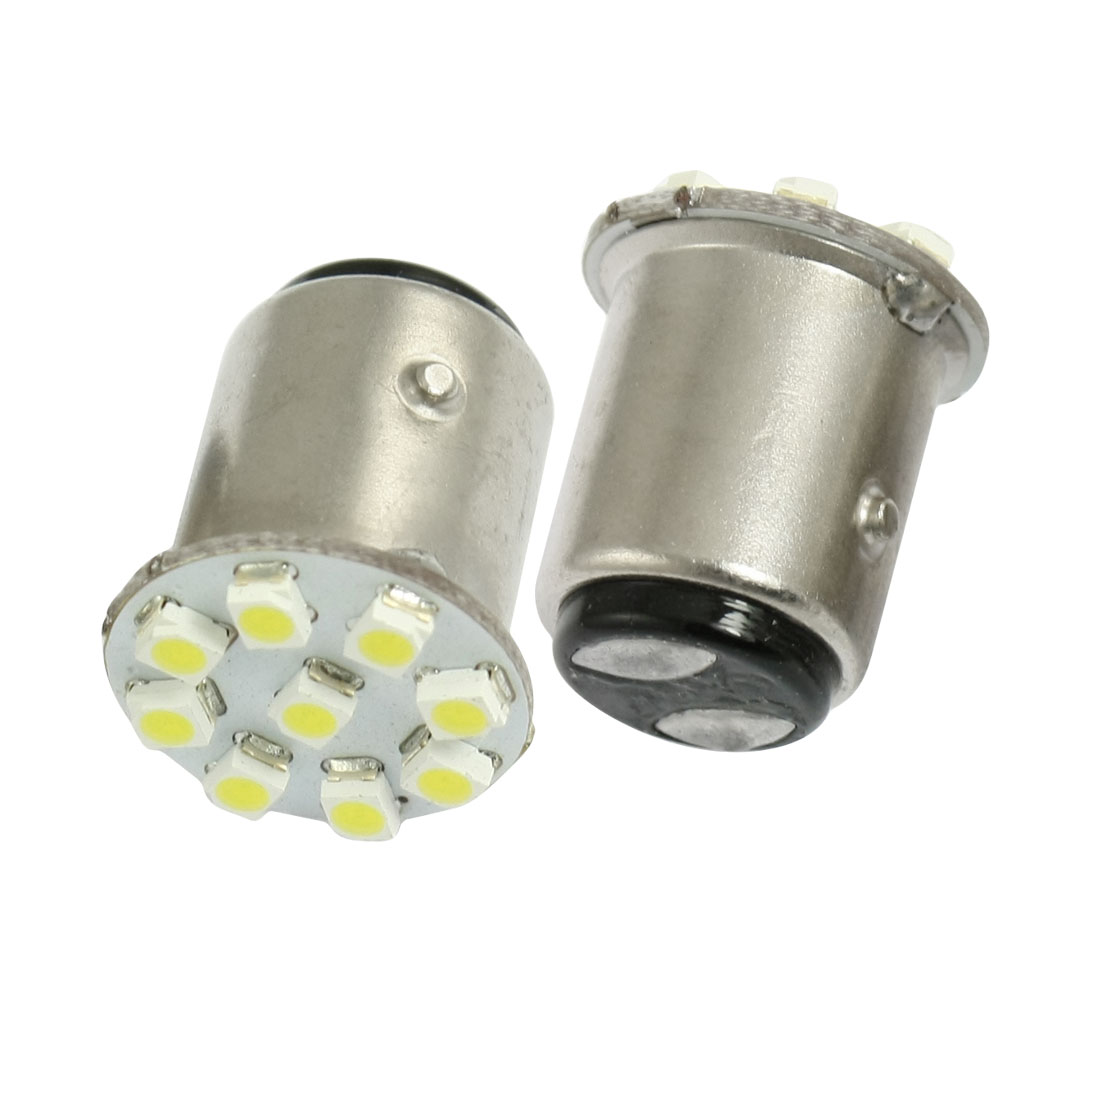 2 Pcs Car 1157 BAY15D Bayonet White 1210 SMD 9 LED Tail Brake Light Bulb Lamp